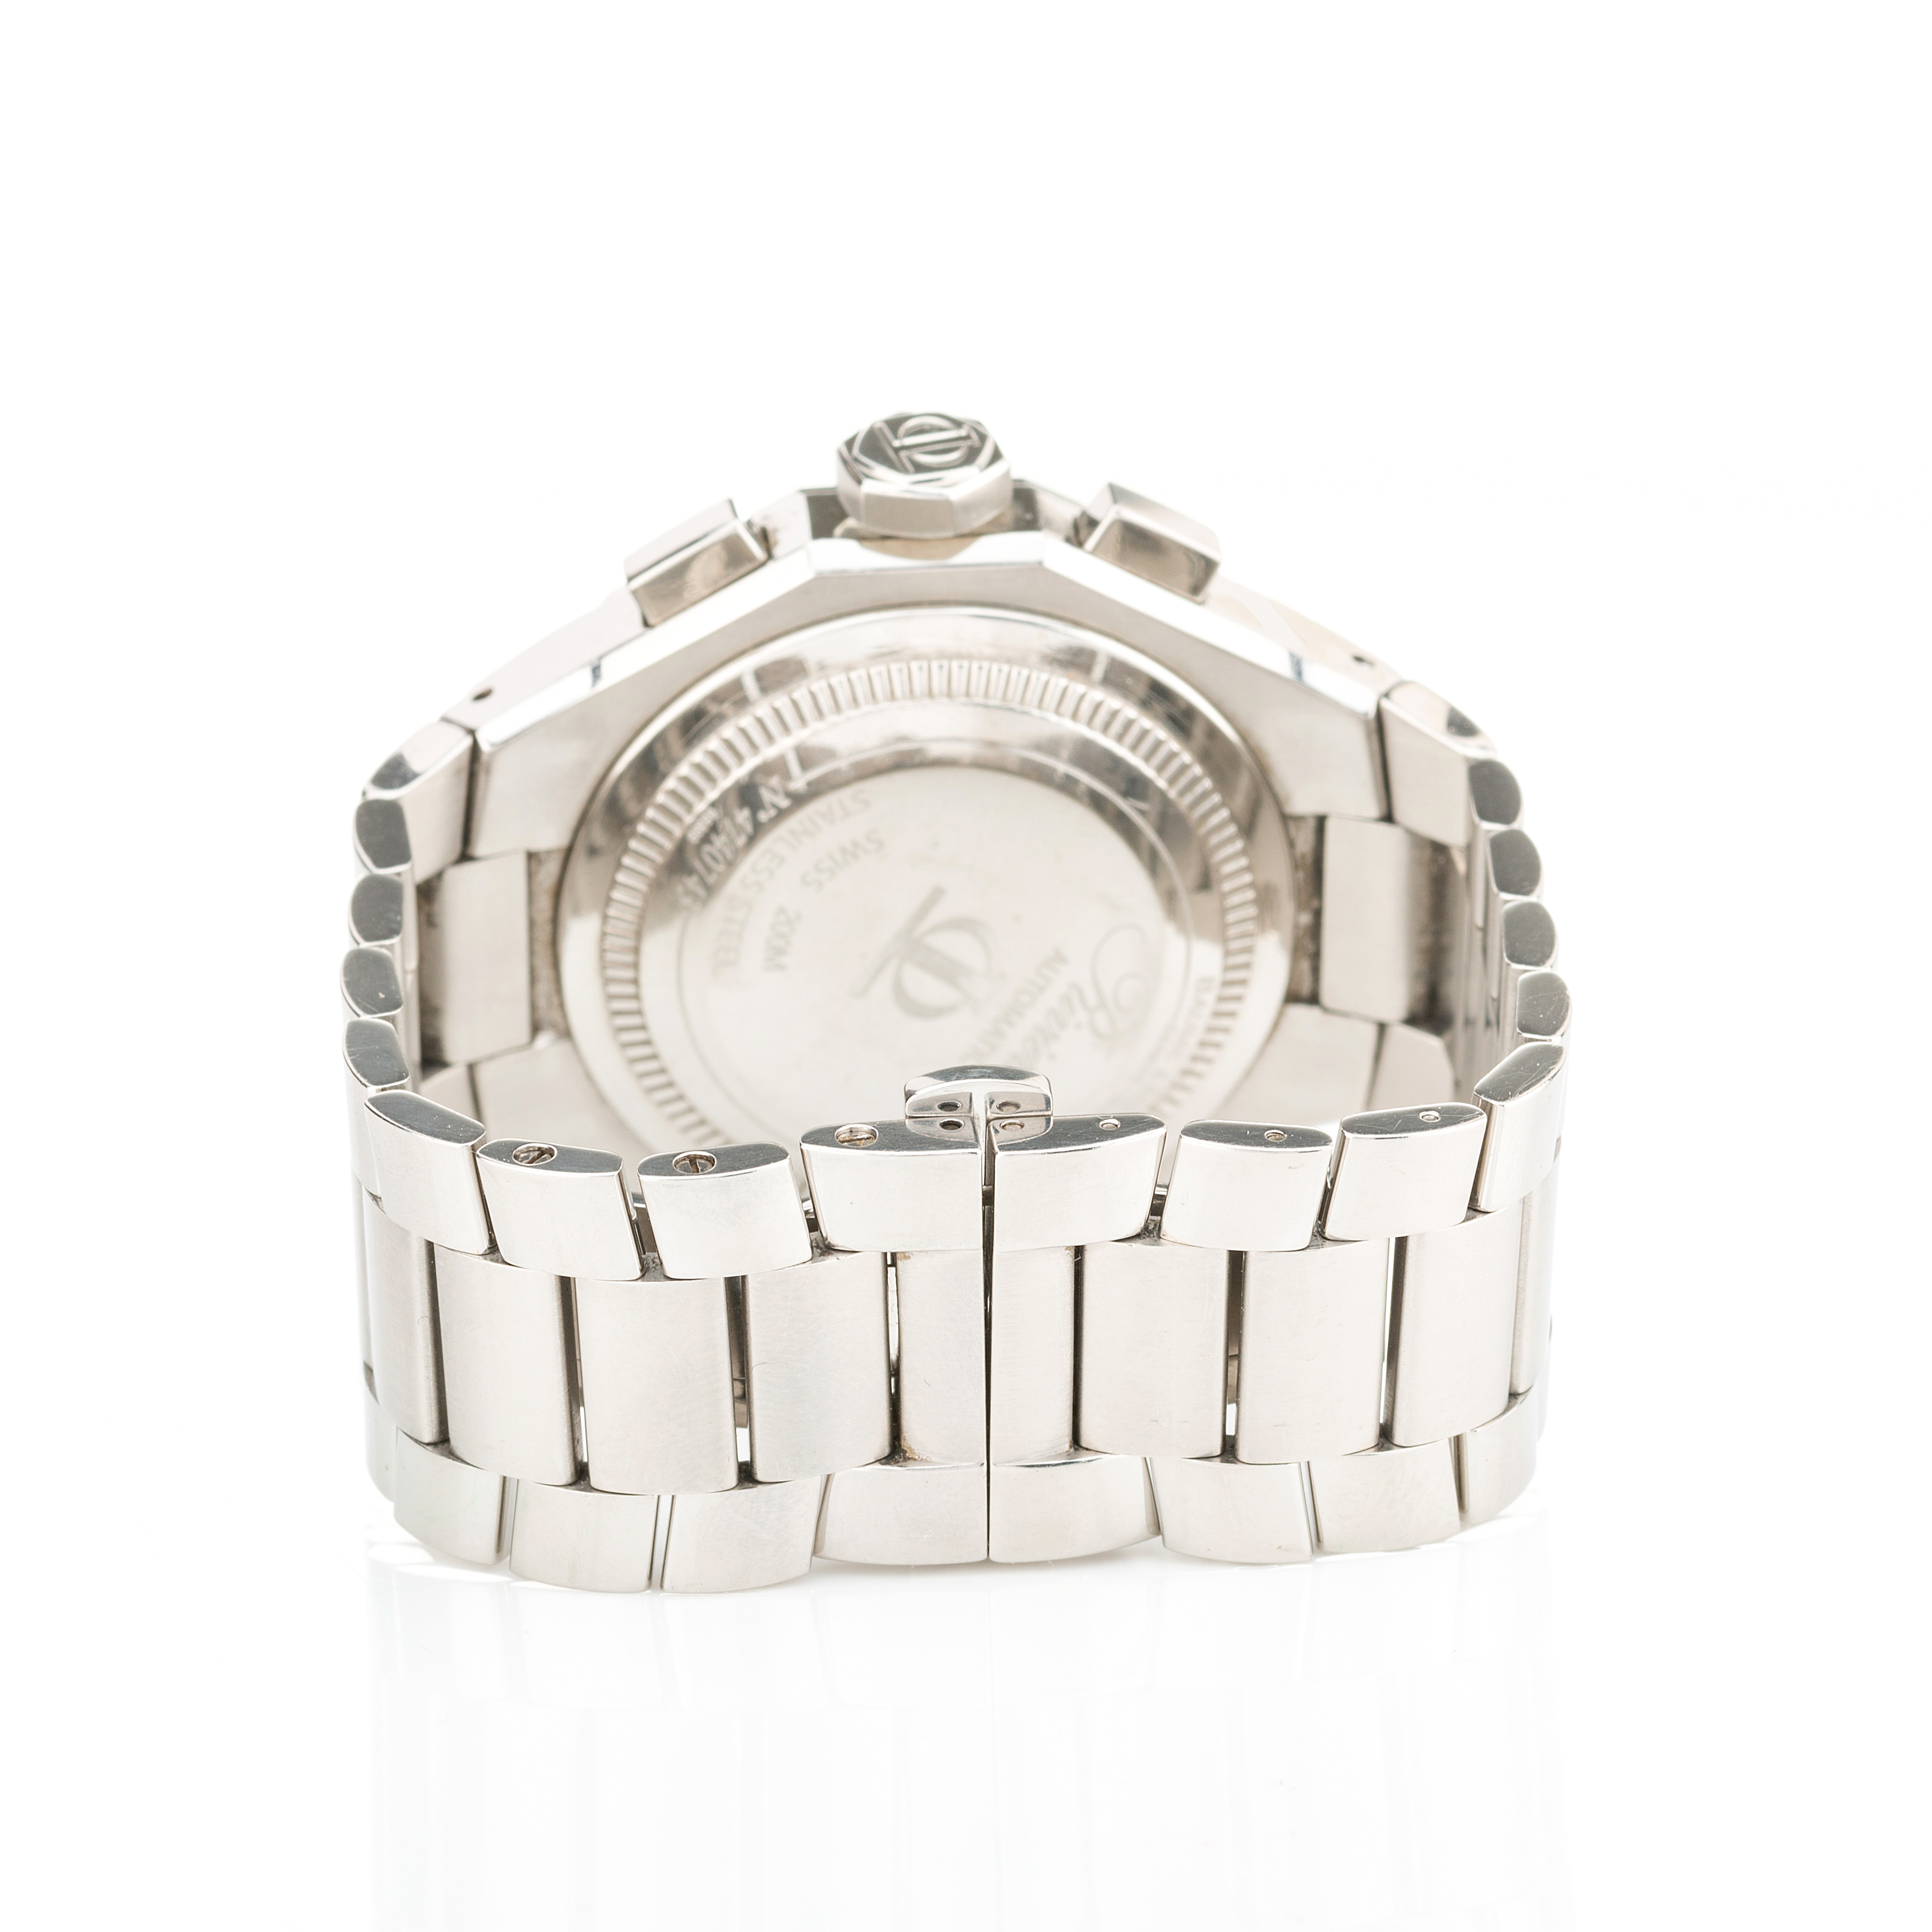 Baume & Mercier, a stainless steel Riviera automatic chronograph bracelet watch - Image 3 of 4